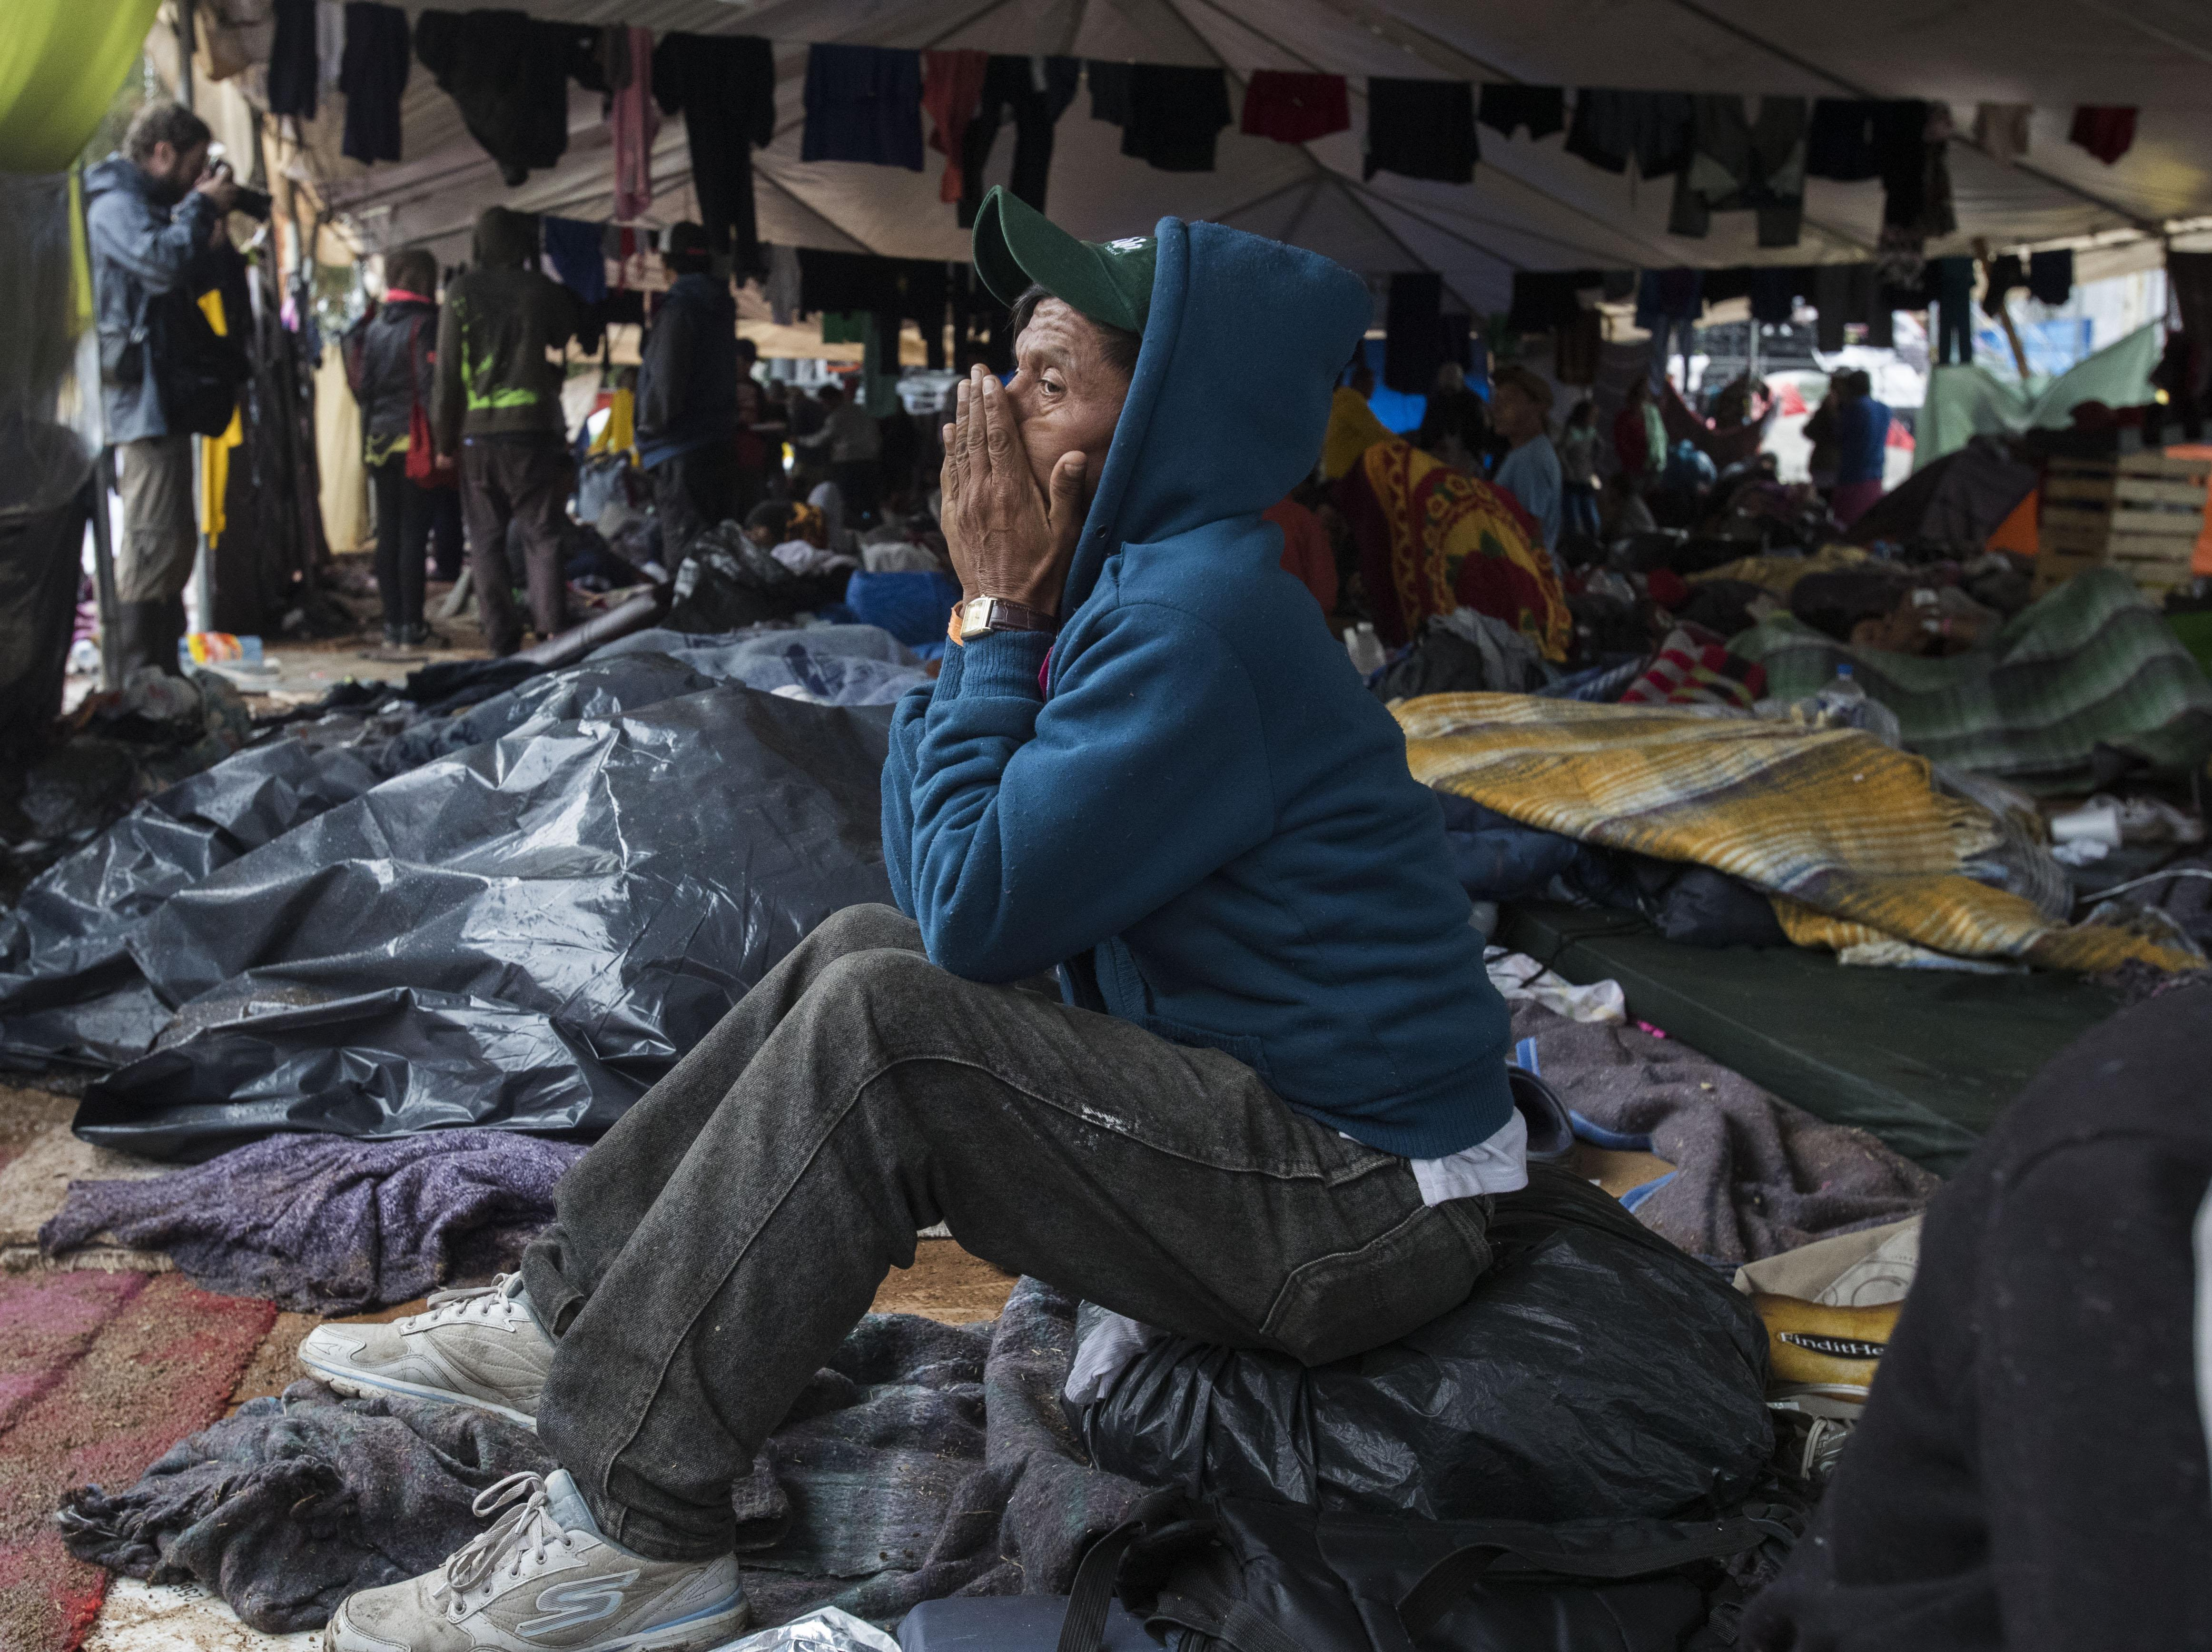 Migrant caravan reveals larger truths about immigration